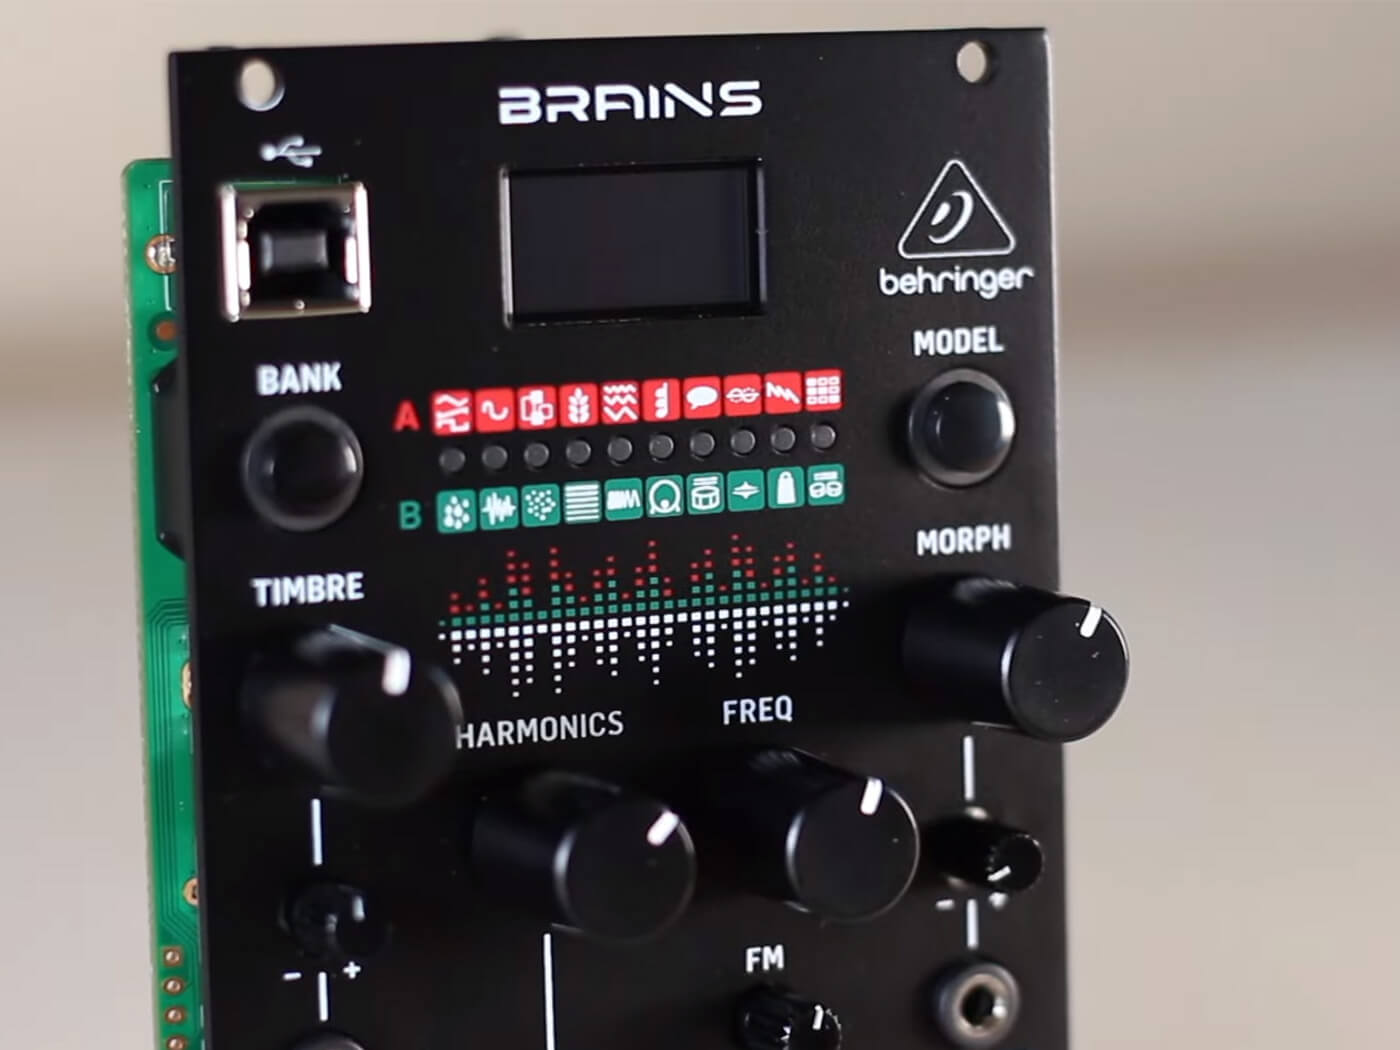 Behringer Brains is a Eurorack multi-engine oscillator with 20 synth engines | MusicTech